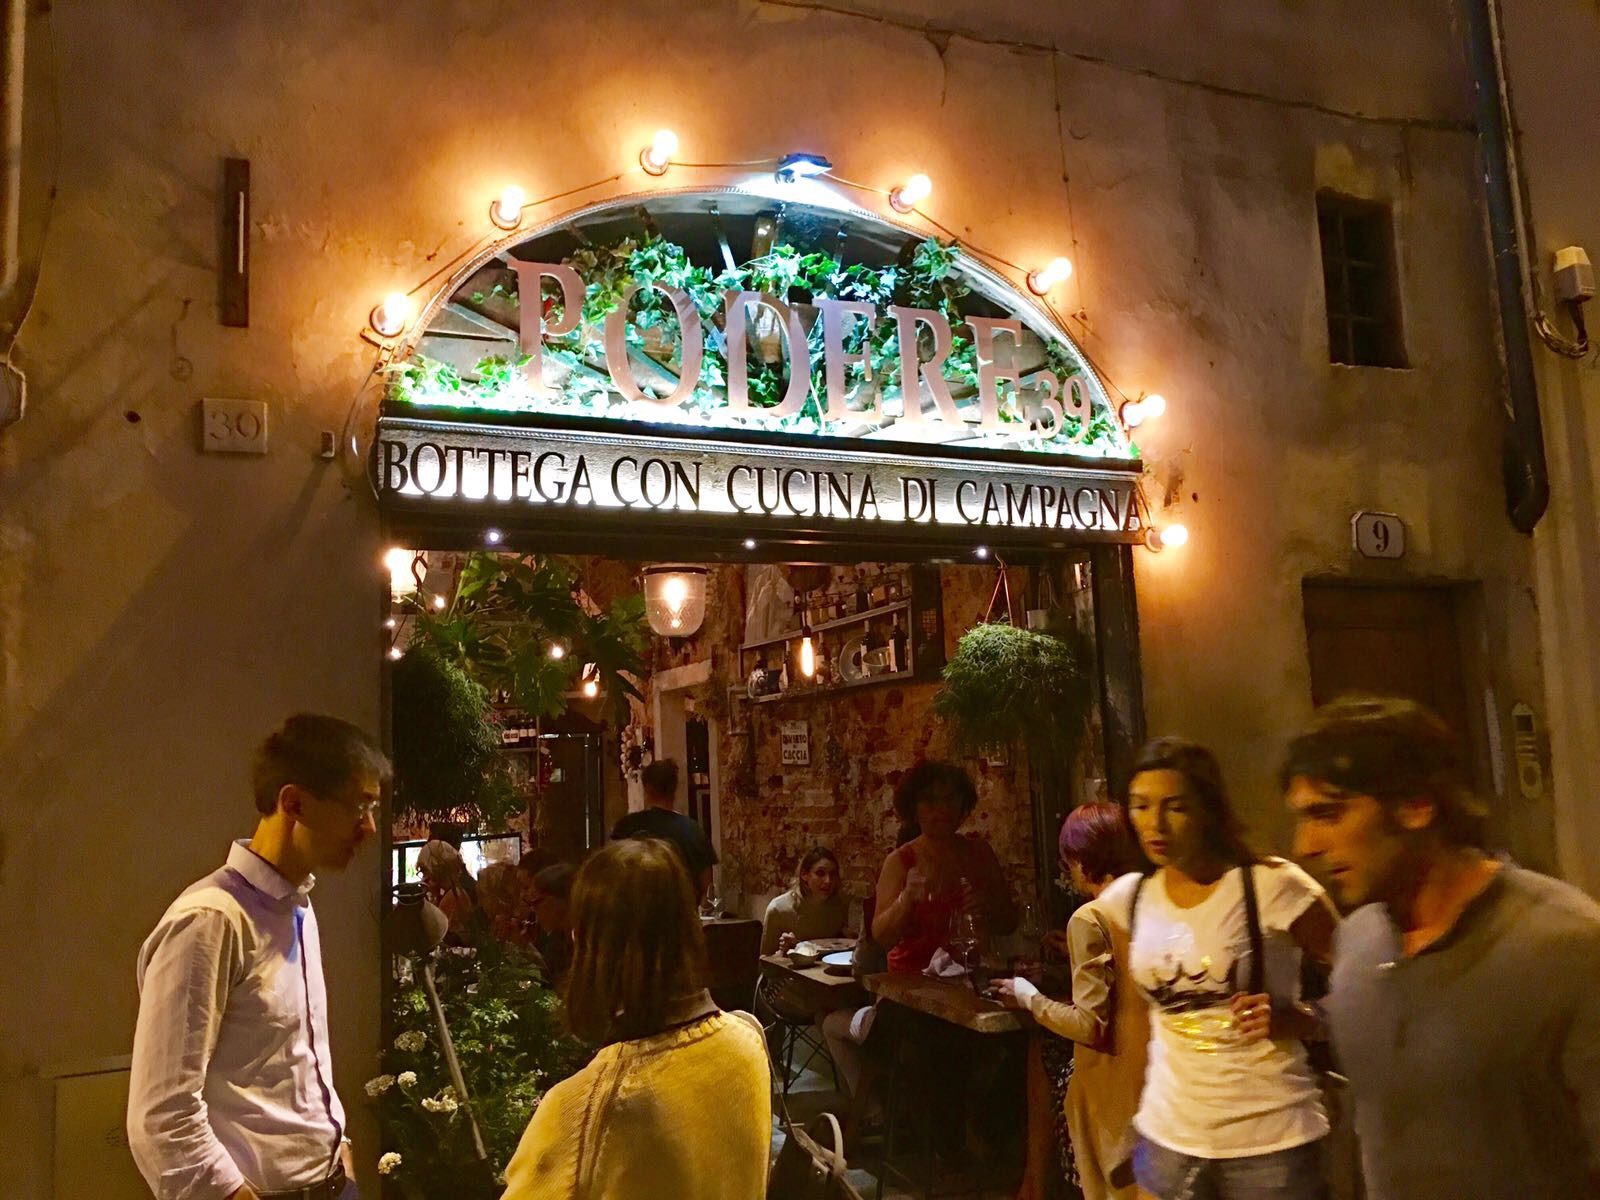 One of our favorite restaurants, Podere 39, on Via Senese. The pasta is amazing!  https://www.facebook.com/Podere-39-Firenze-919420918172225/